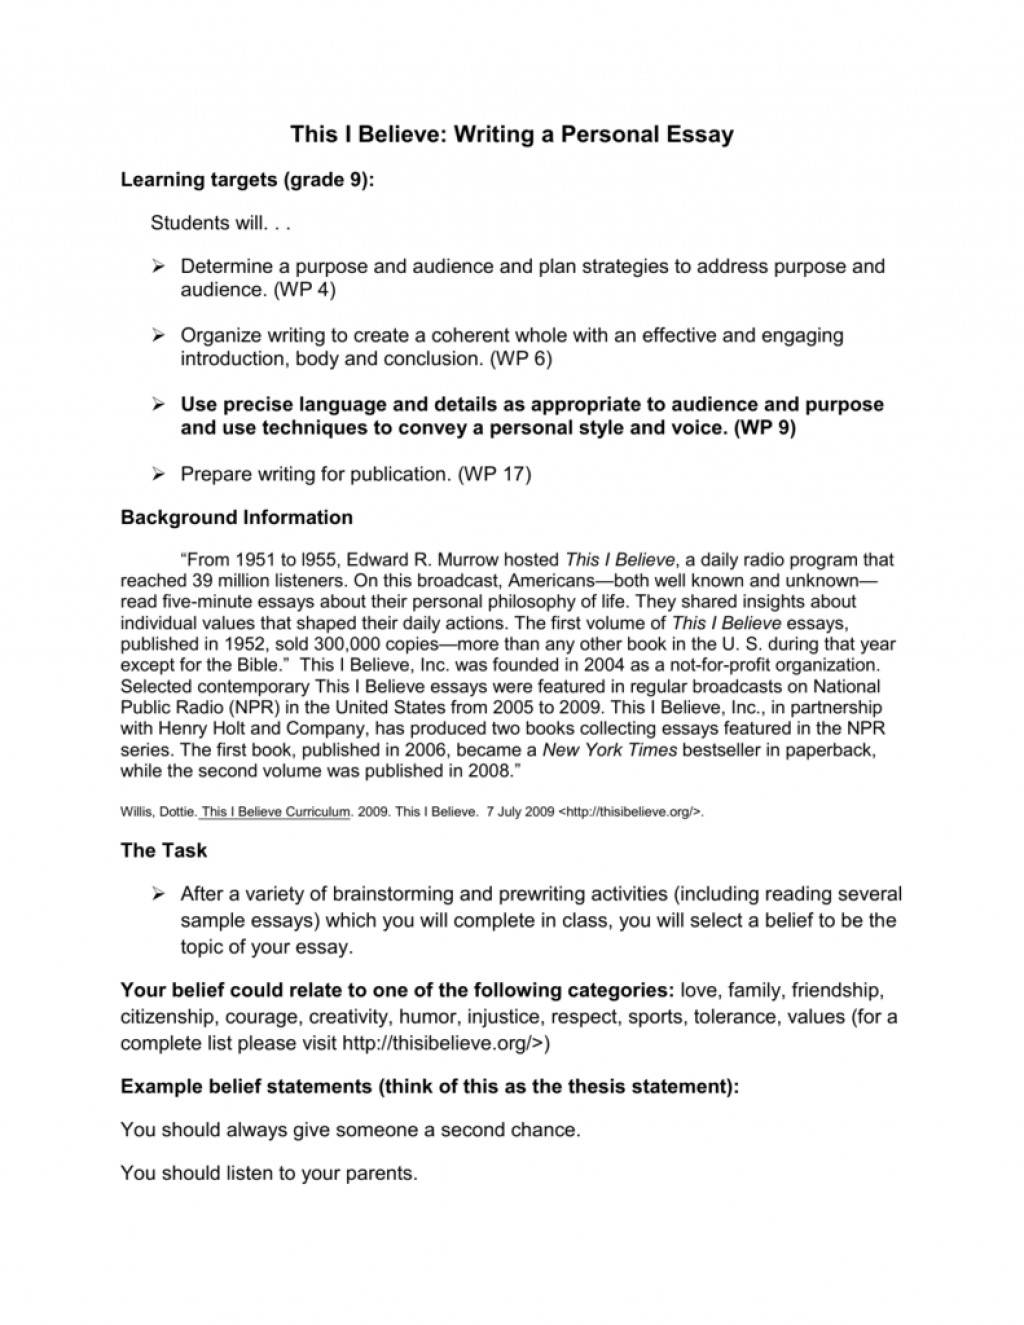 002 Essay Example I Belive Essays 006750112 1 Surprising Believe About Sports Ideas Large